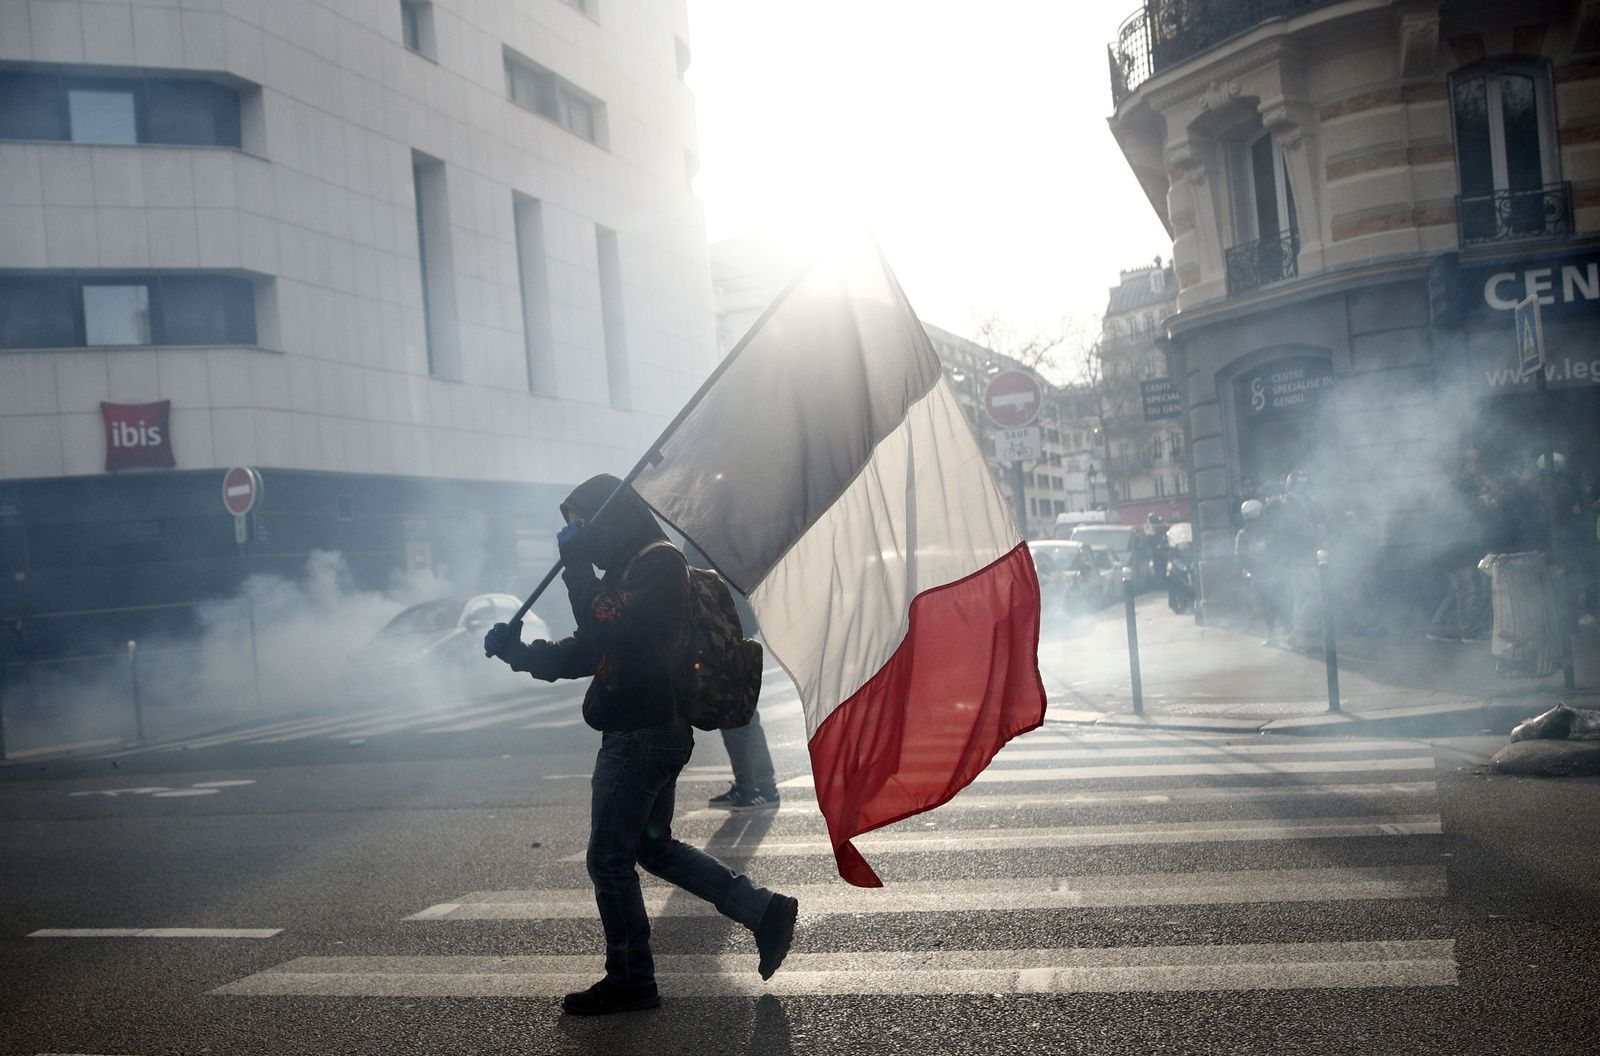 National day of protest in France, Paris - 11 Jan 2020